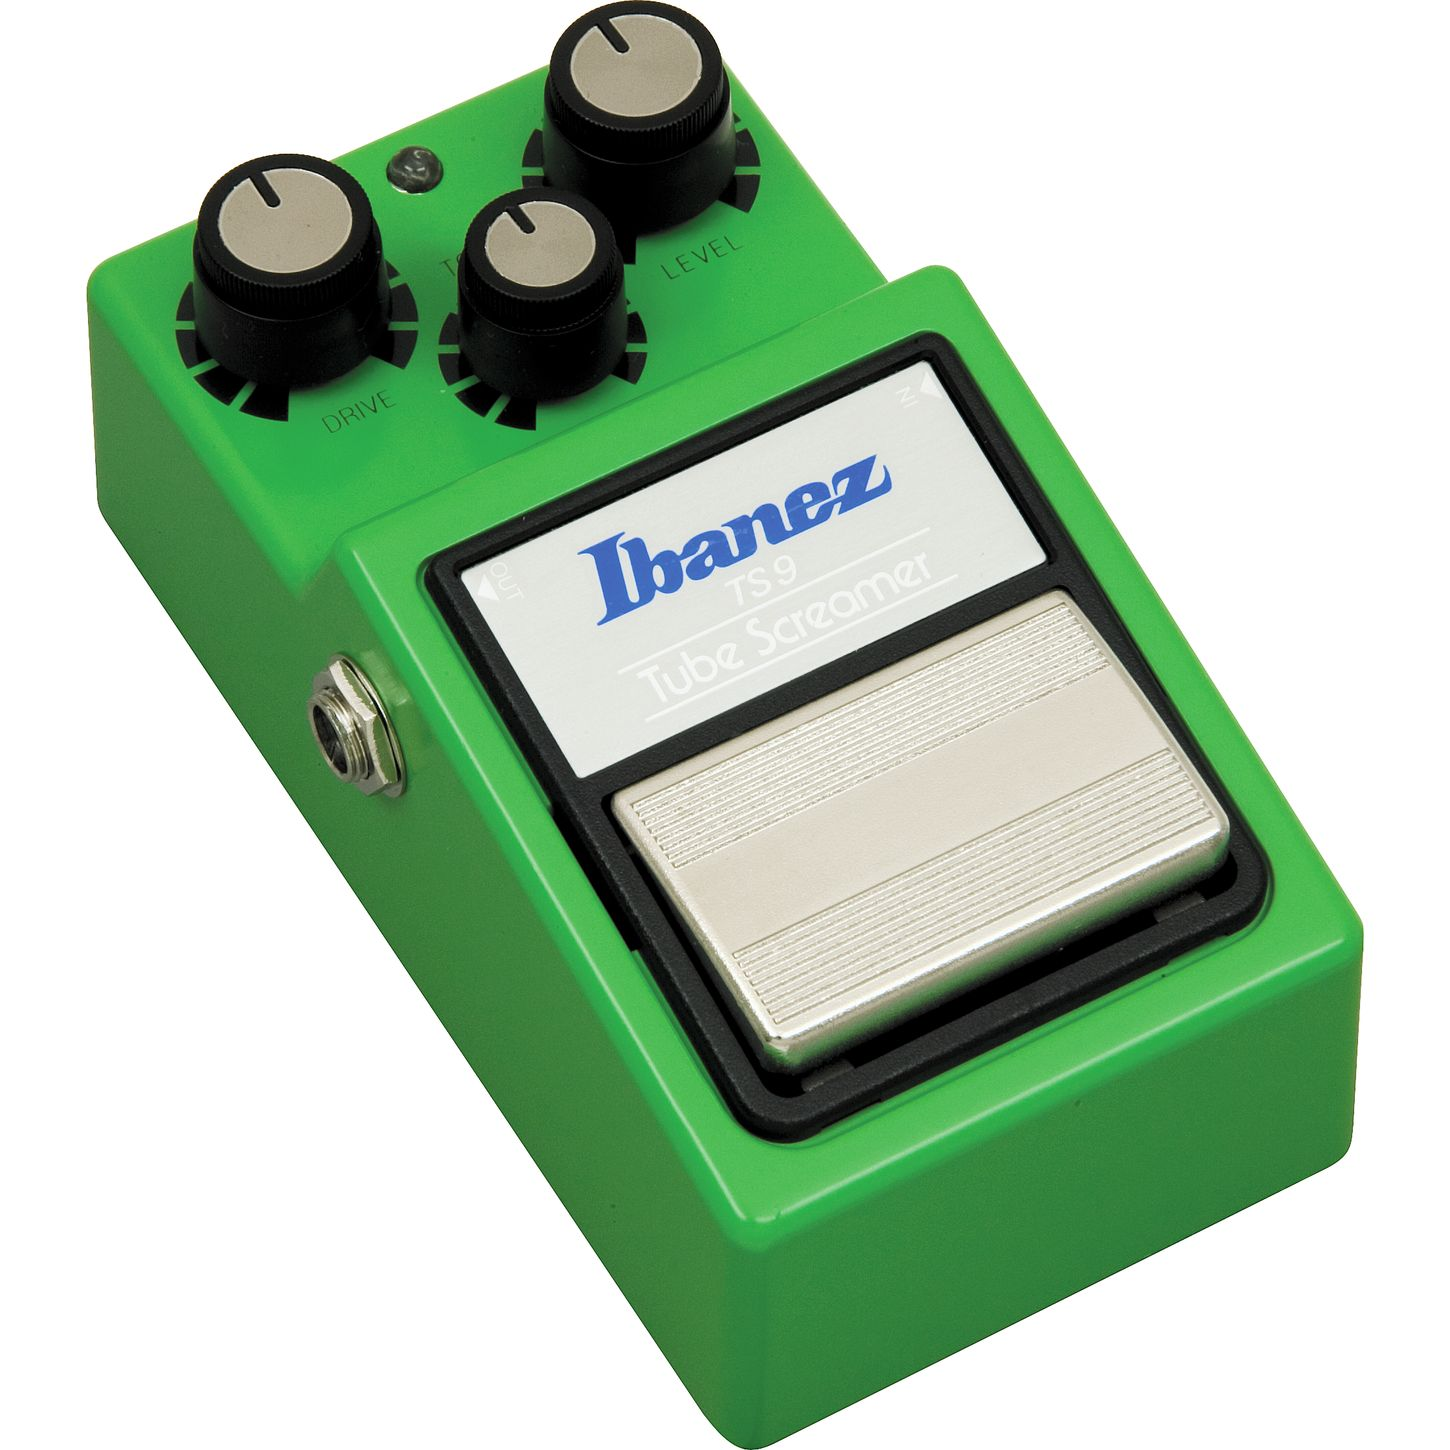 Gearfeel Reviews Ibanez Tube Screamer Ts9